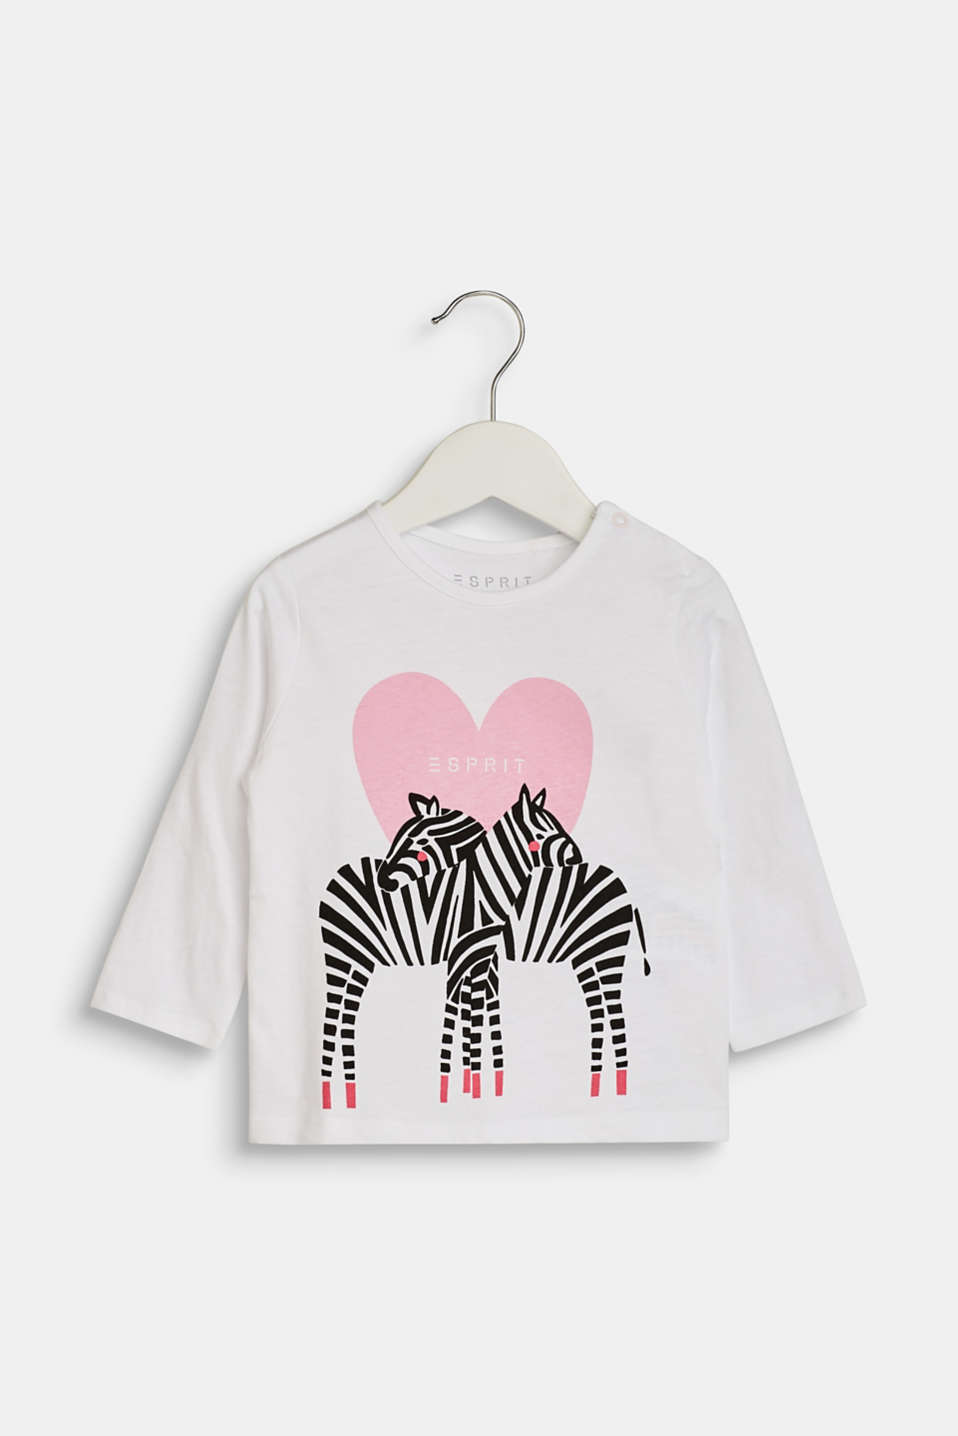 Esprit - Long sleeve top with a zebra print, 100% cotton